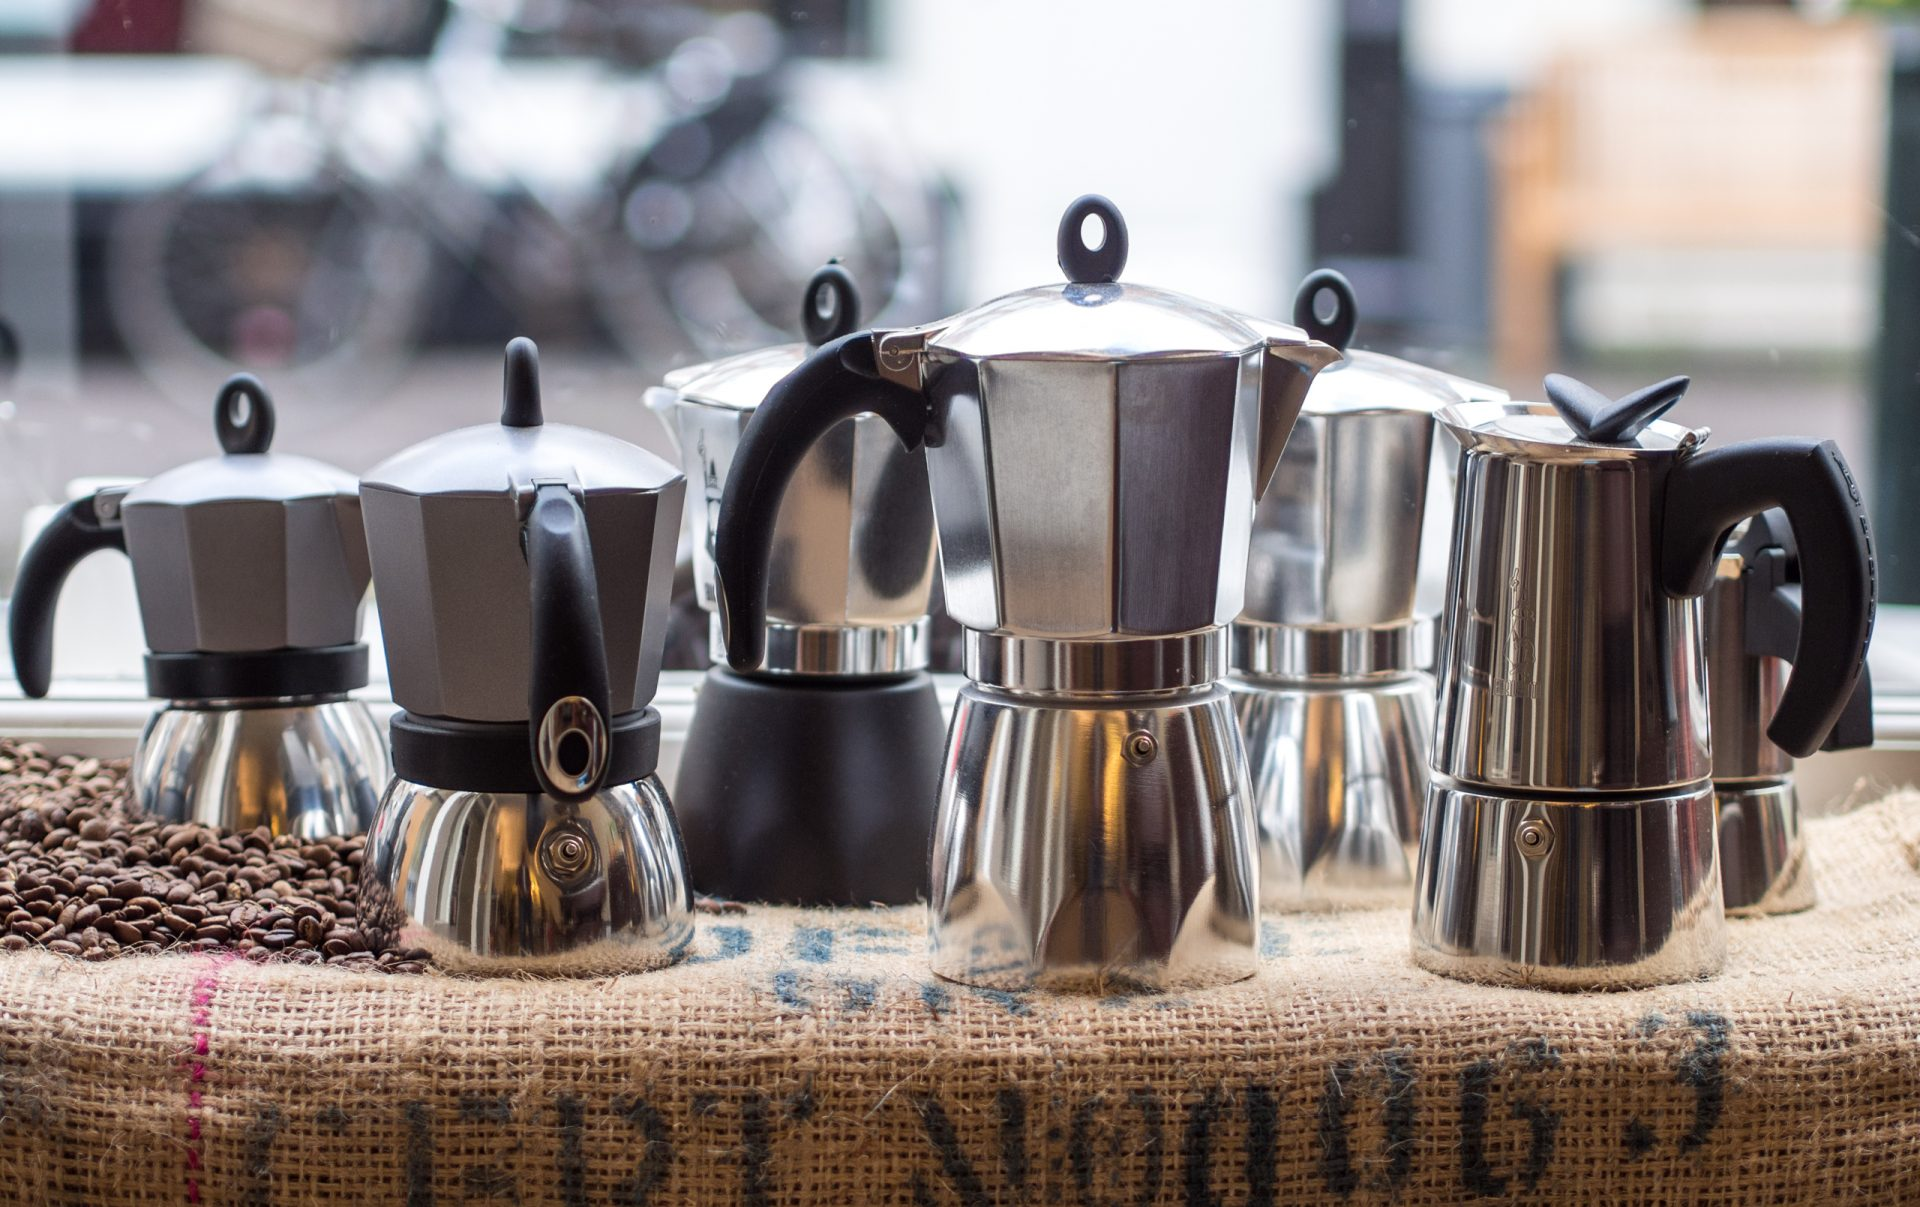 A selection of Bialetti moka pots at Koffiebranderij BOON in The Hague.